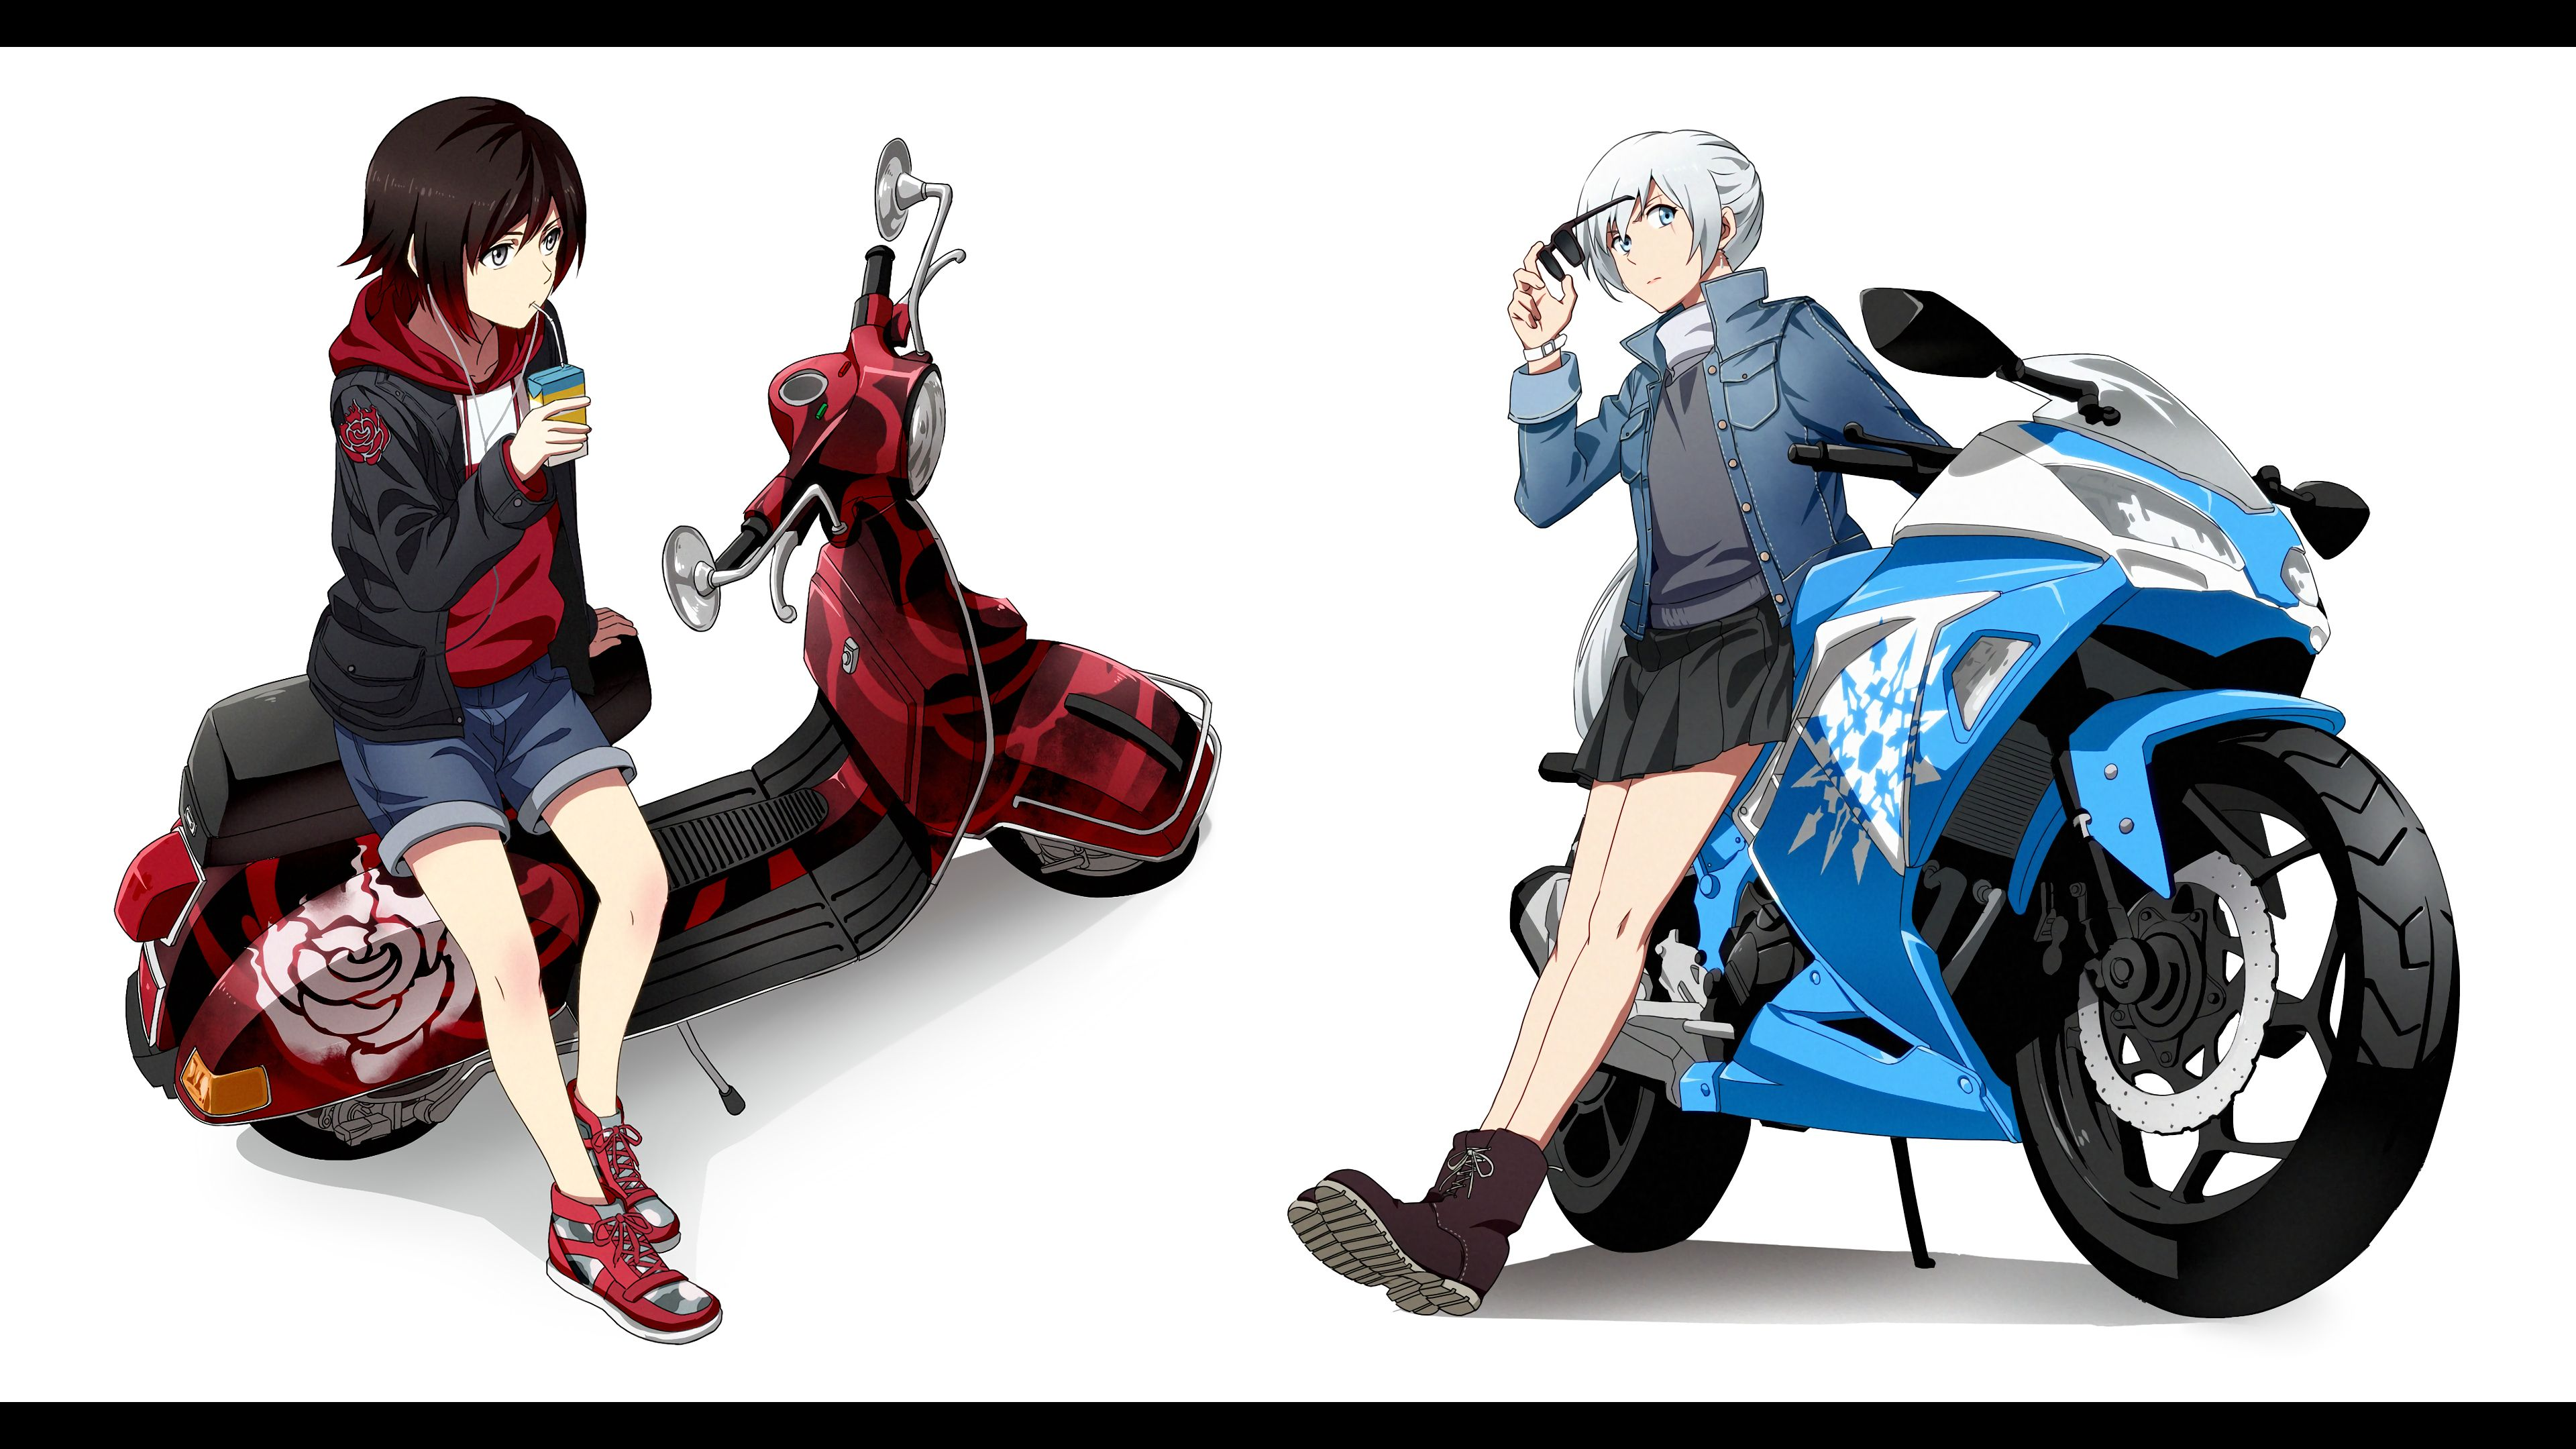 Anime Rwby Motorcycle Weiss Schnee Ruby Rose Wallpaper Rwby